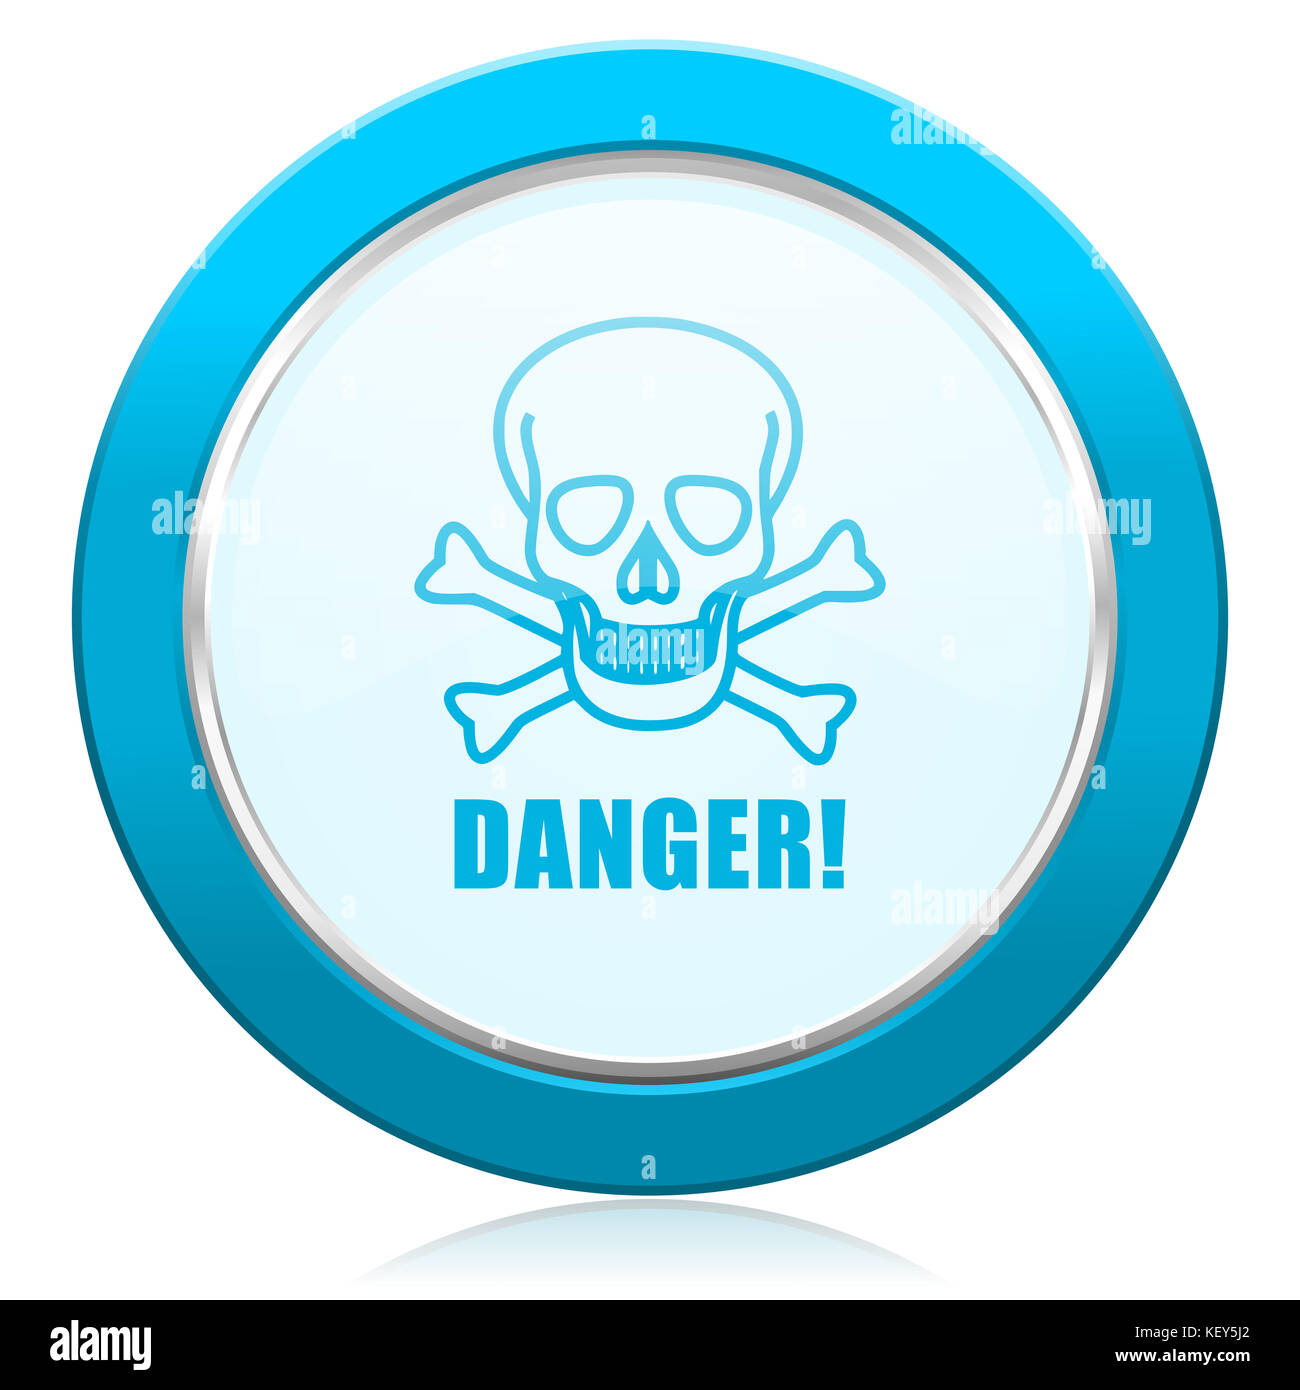 Danger skull blue chrome silver metallic border web icon. Round button for internet and mobile phone application Stock Photo